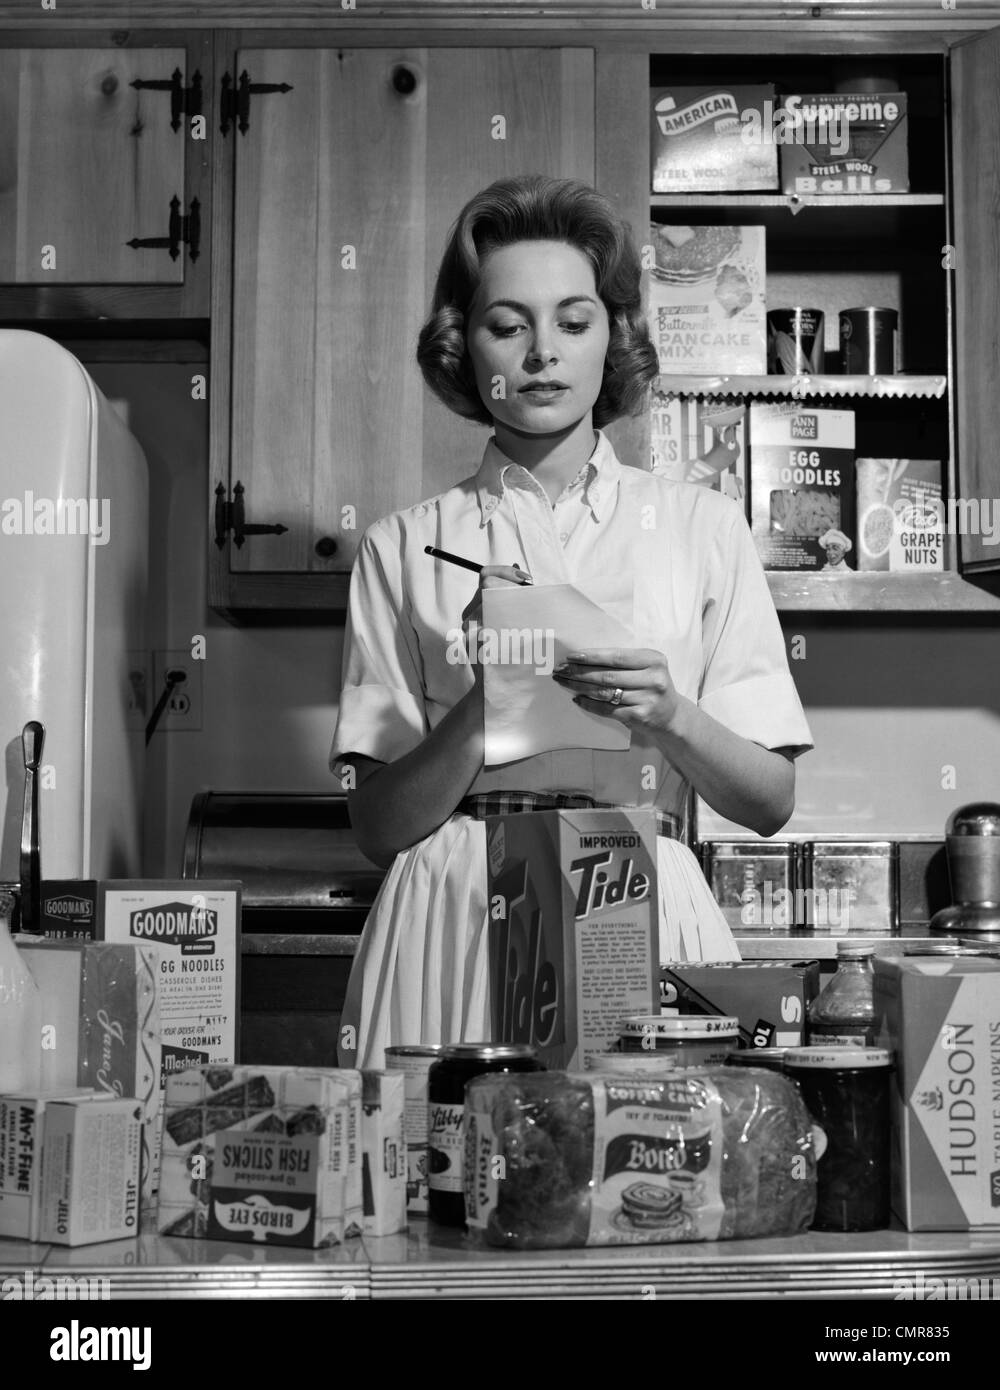 1960s Woman Housewife In Kitchen Checking Grocery Food